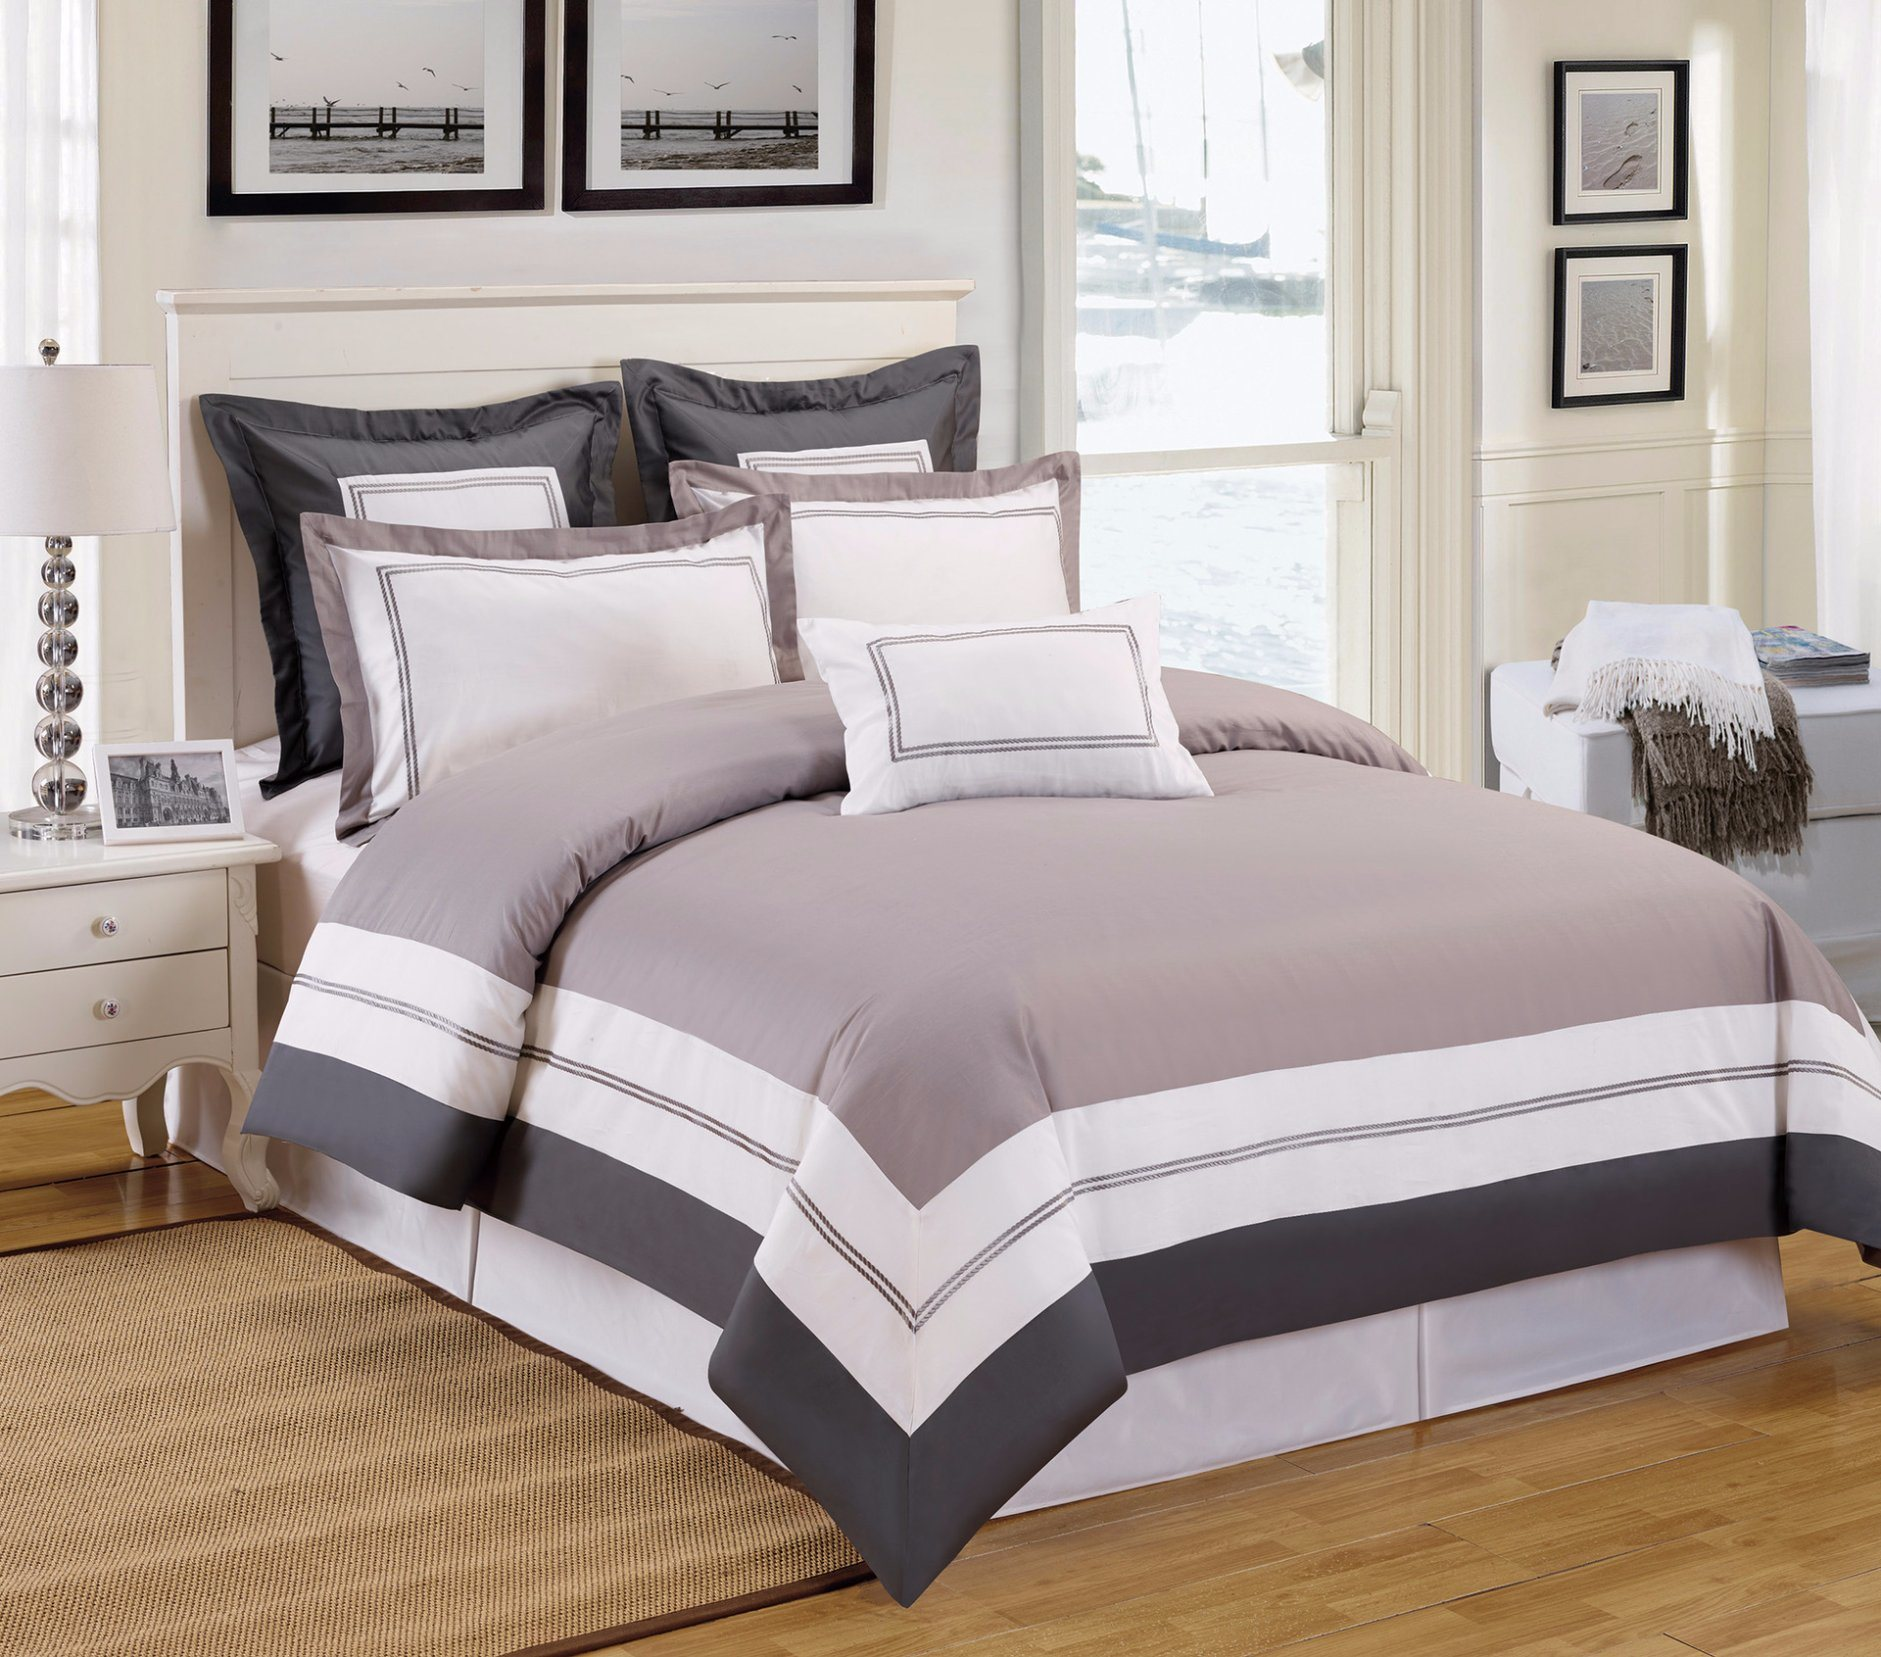 Grey Park 4 Pieces Full Cotton Simple Style Bedding Sets